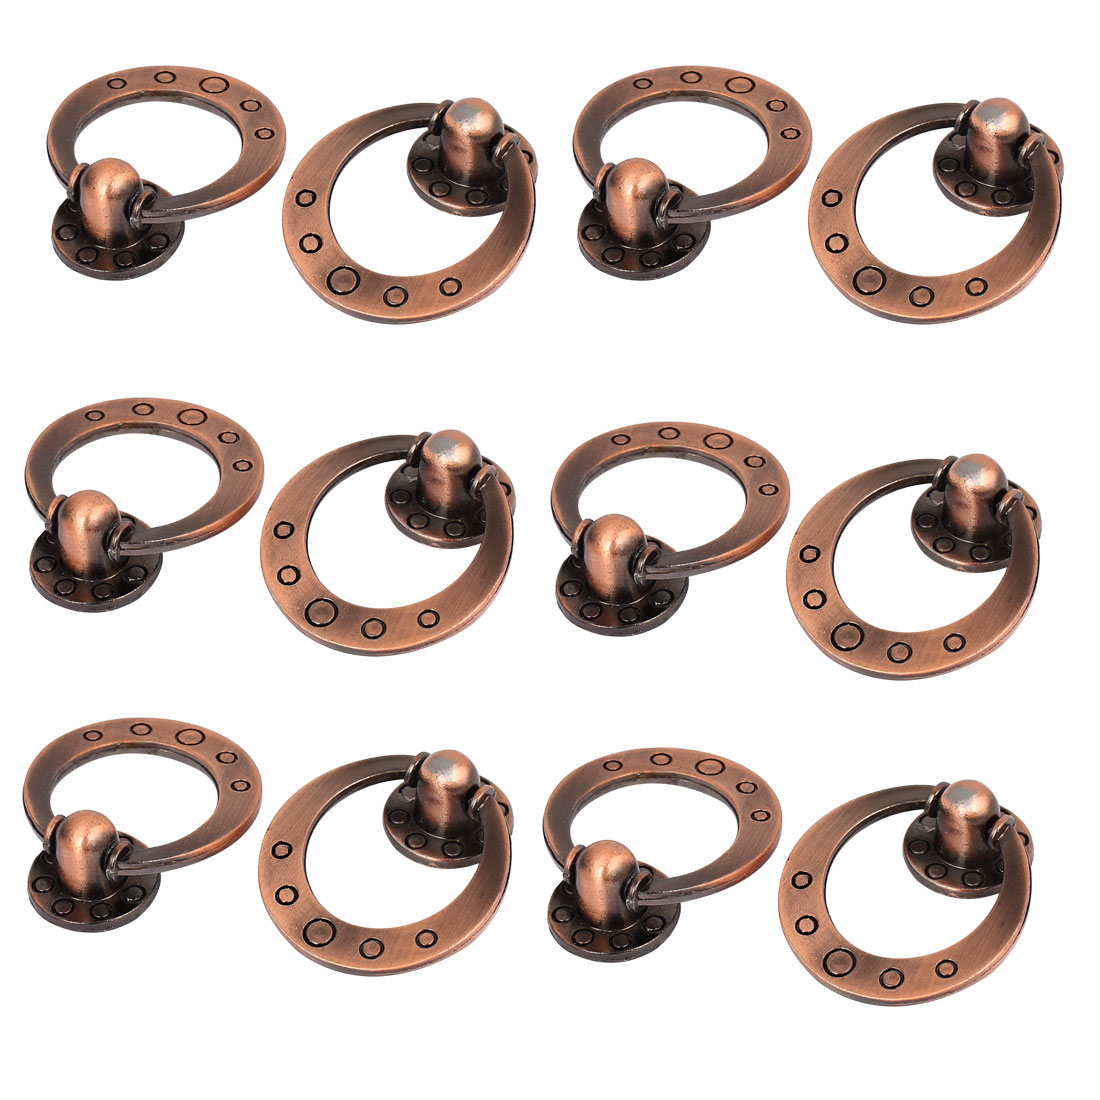 Cupboard Wardrobe Drawer Round Base Pull Ring Handle Grip Copper Tone 12pcs